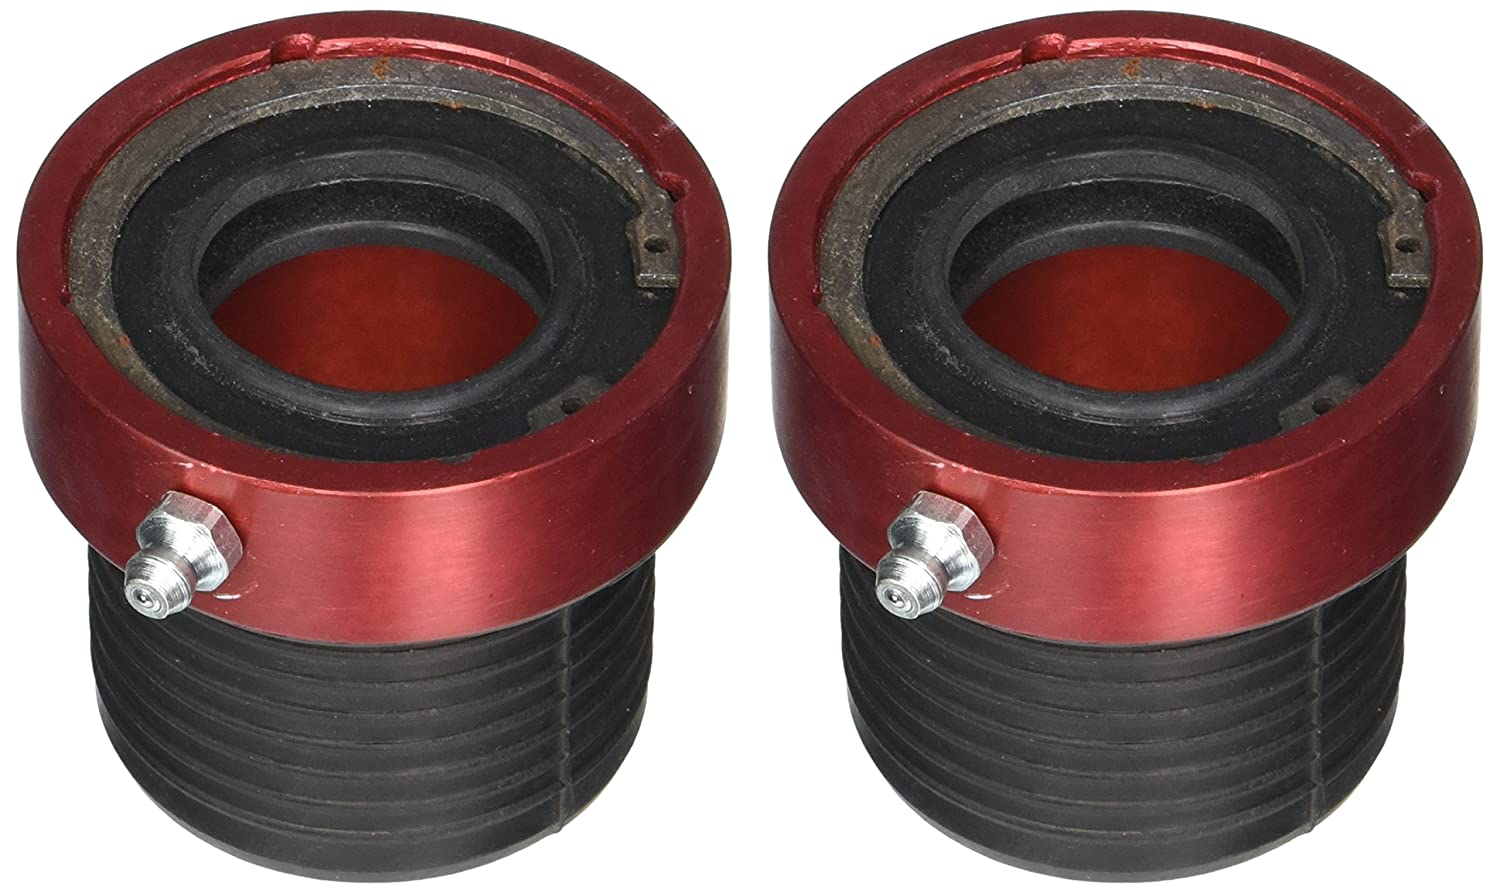 Ten Factory MG21102 Red Dana Axle Tube Seal 30//44 Pair